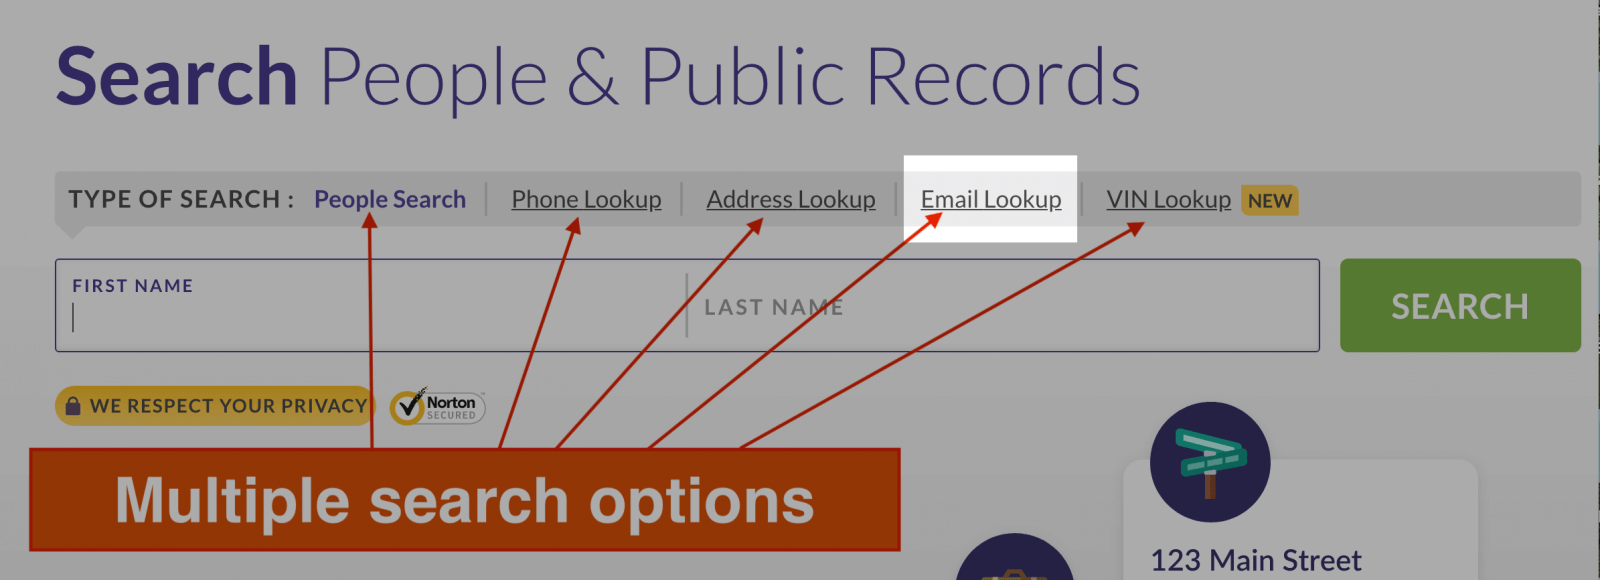 using email address for search